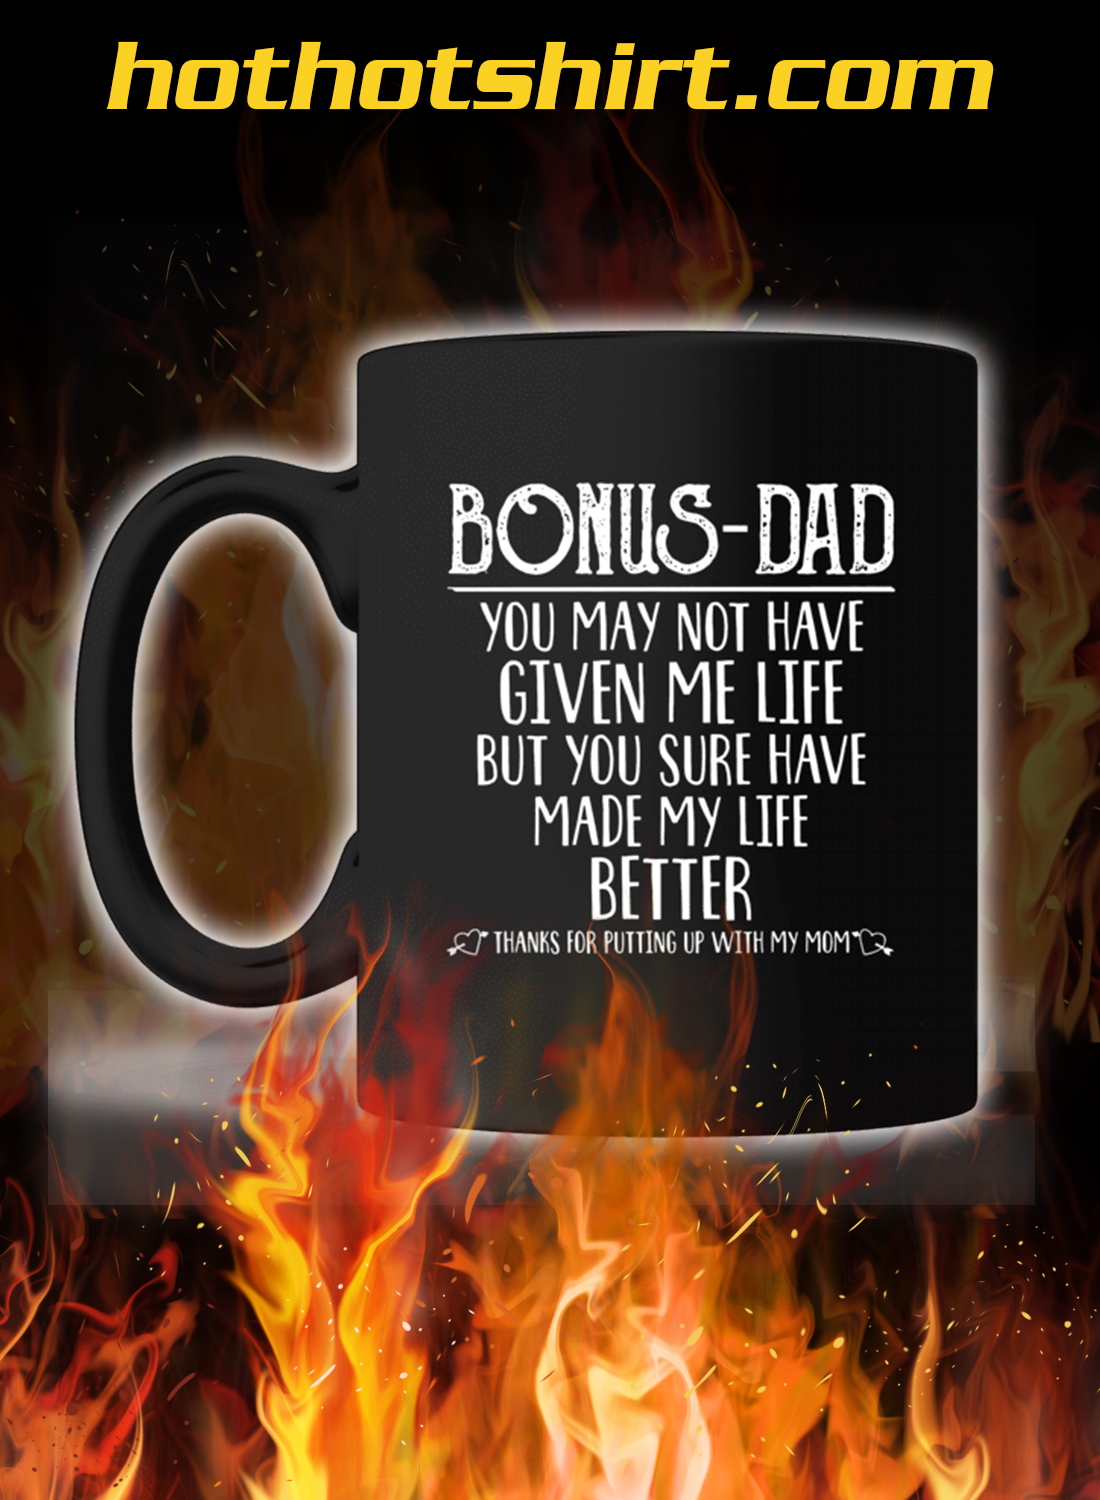 Bonus Dad You May Not Have Given Me Life But You Sure Have Made My Life Better Mug 1